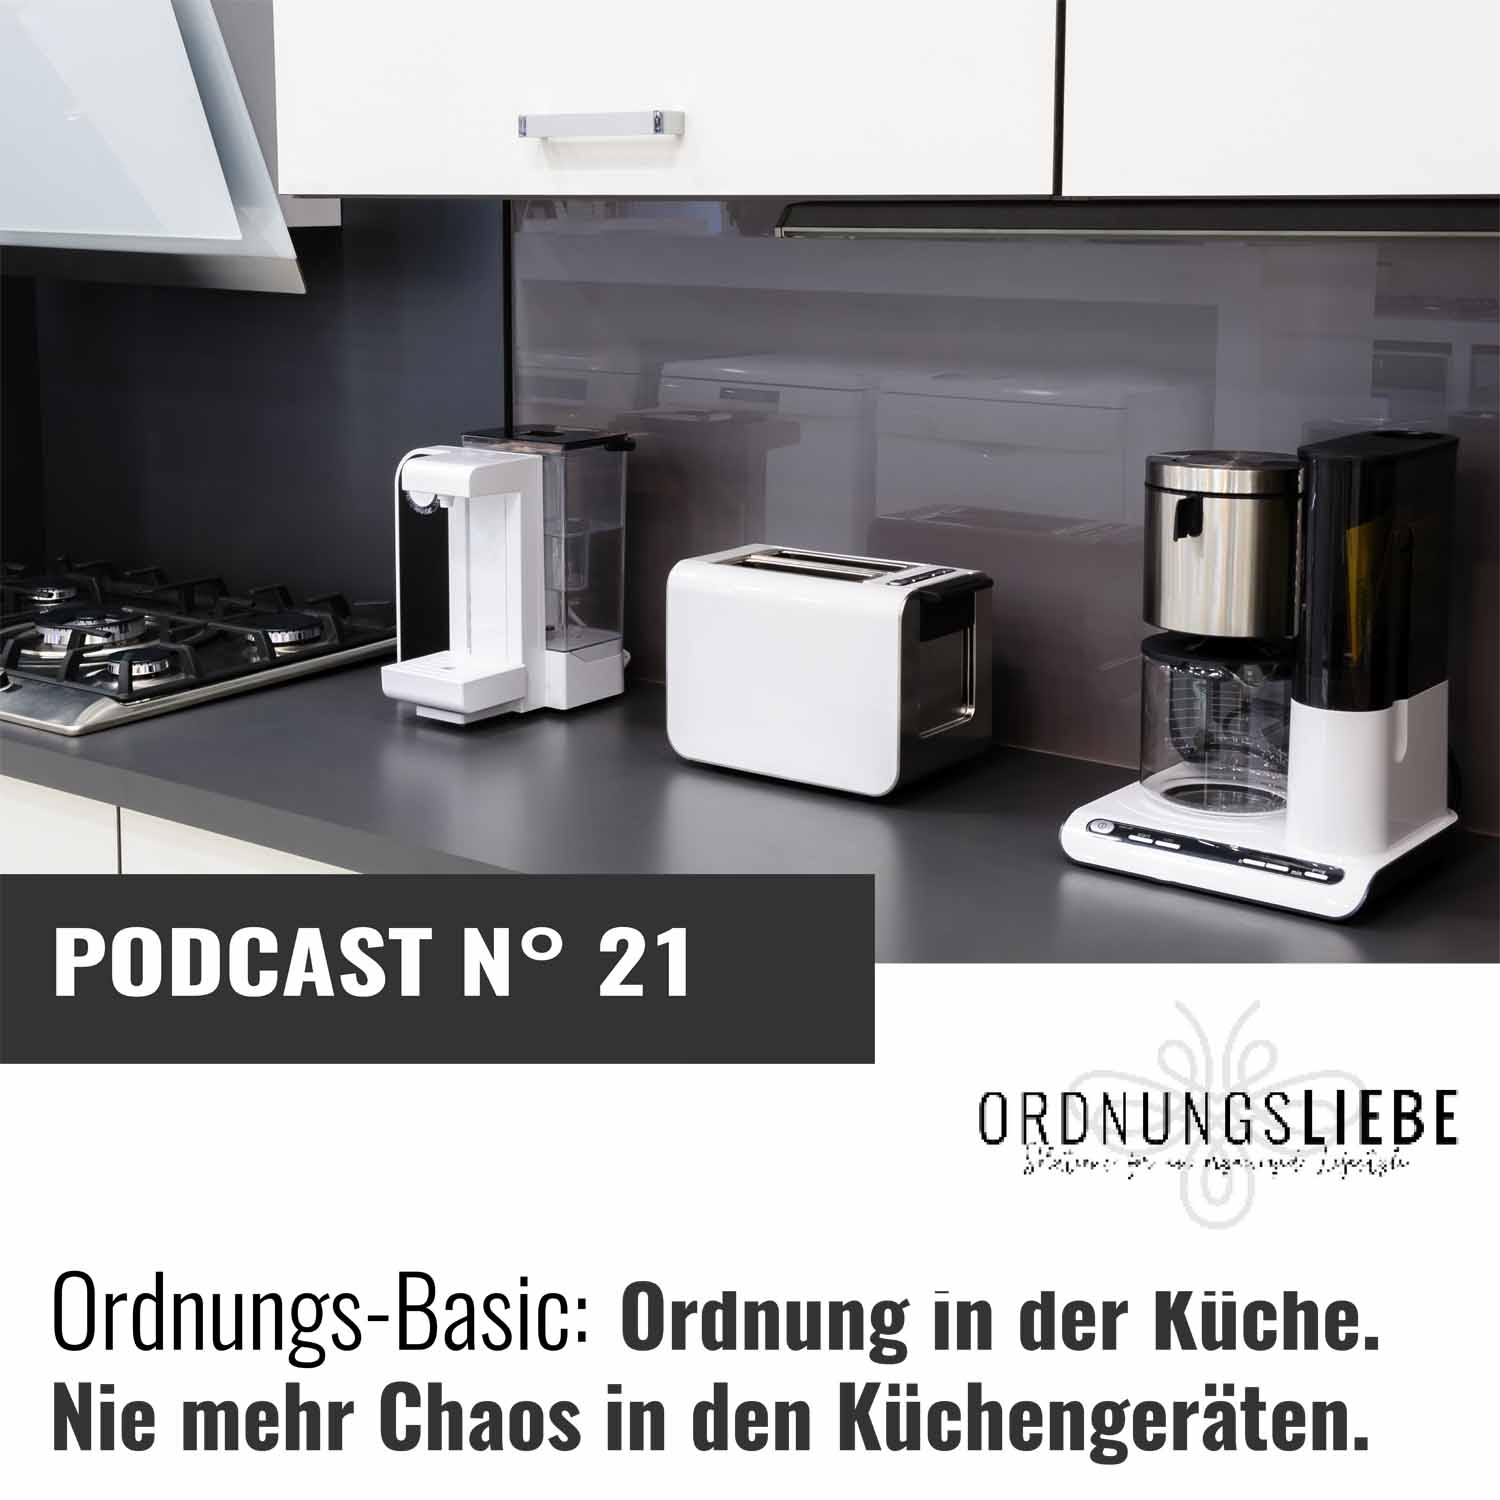 Ordnungsliebe Podcast Podtail